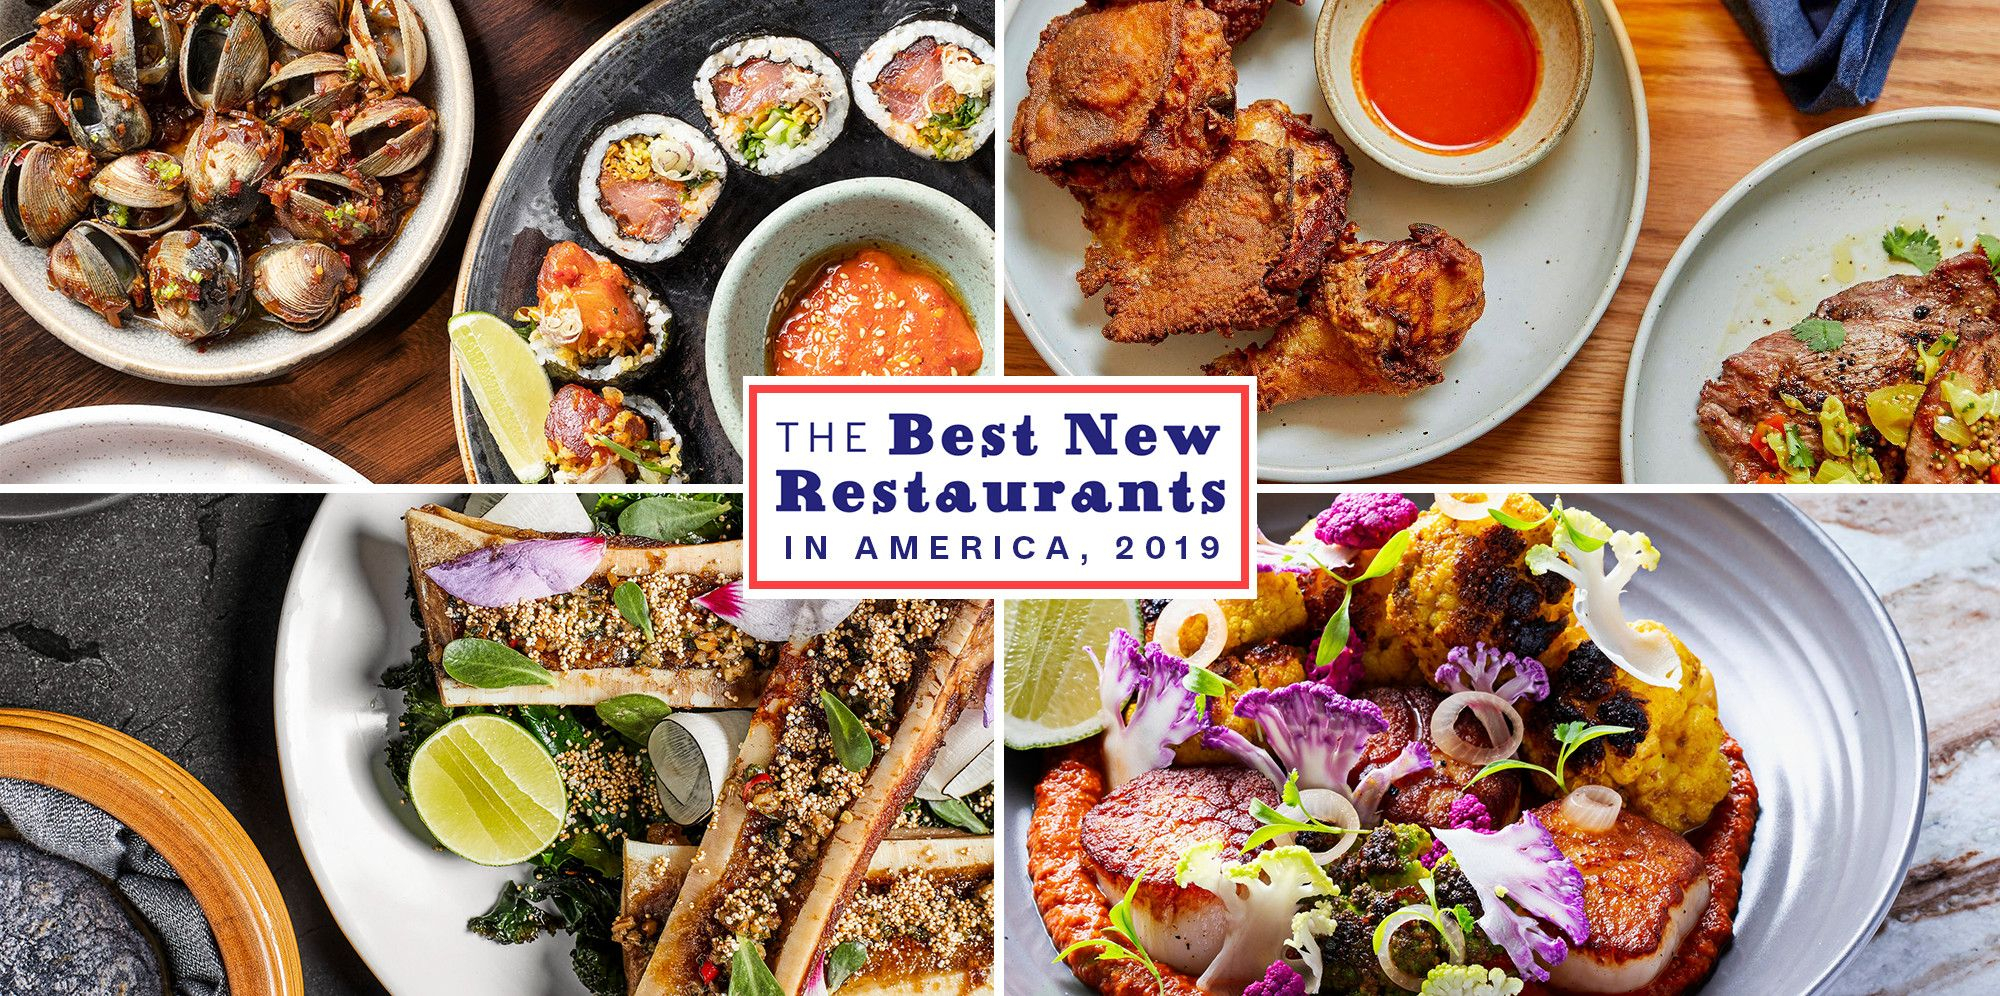 22 Best New Restaurants In America 2019 - Top Places To Eat